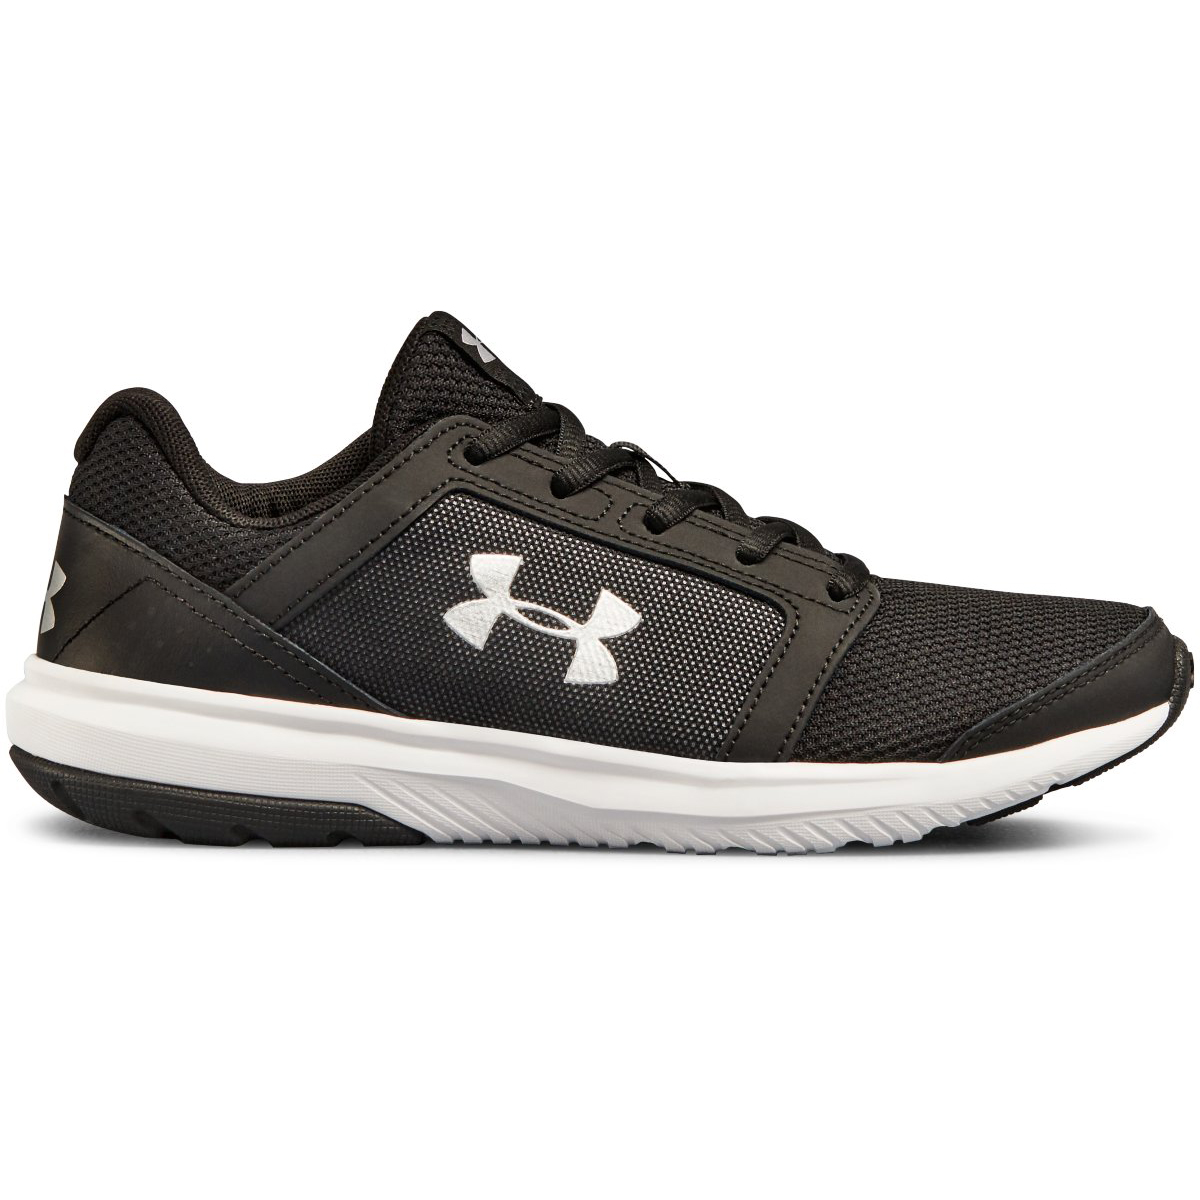 Under Armour Big Boys' Grade School Unlimited Running Shoes - Black, 6